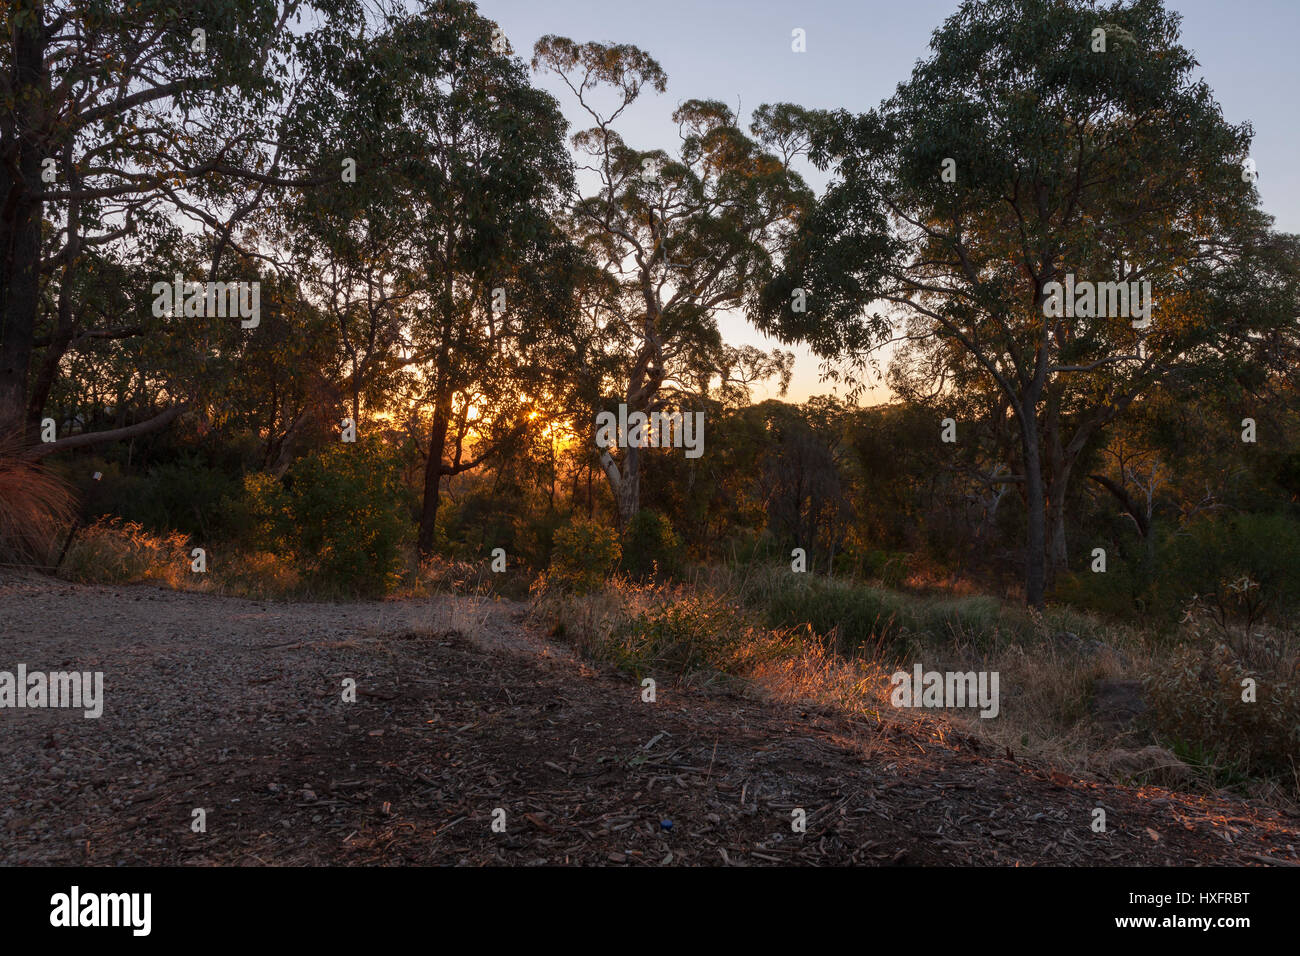 Lesmurdie National Park, Perth, West Australia. Sunset shining through the trees near the upper Lesmurdie falls, - Stock Image